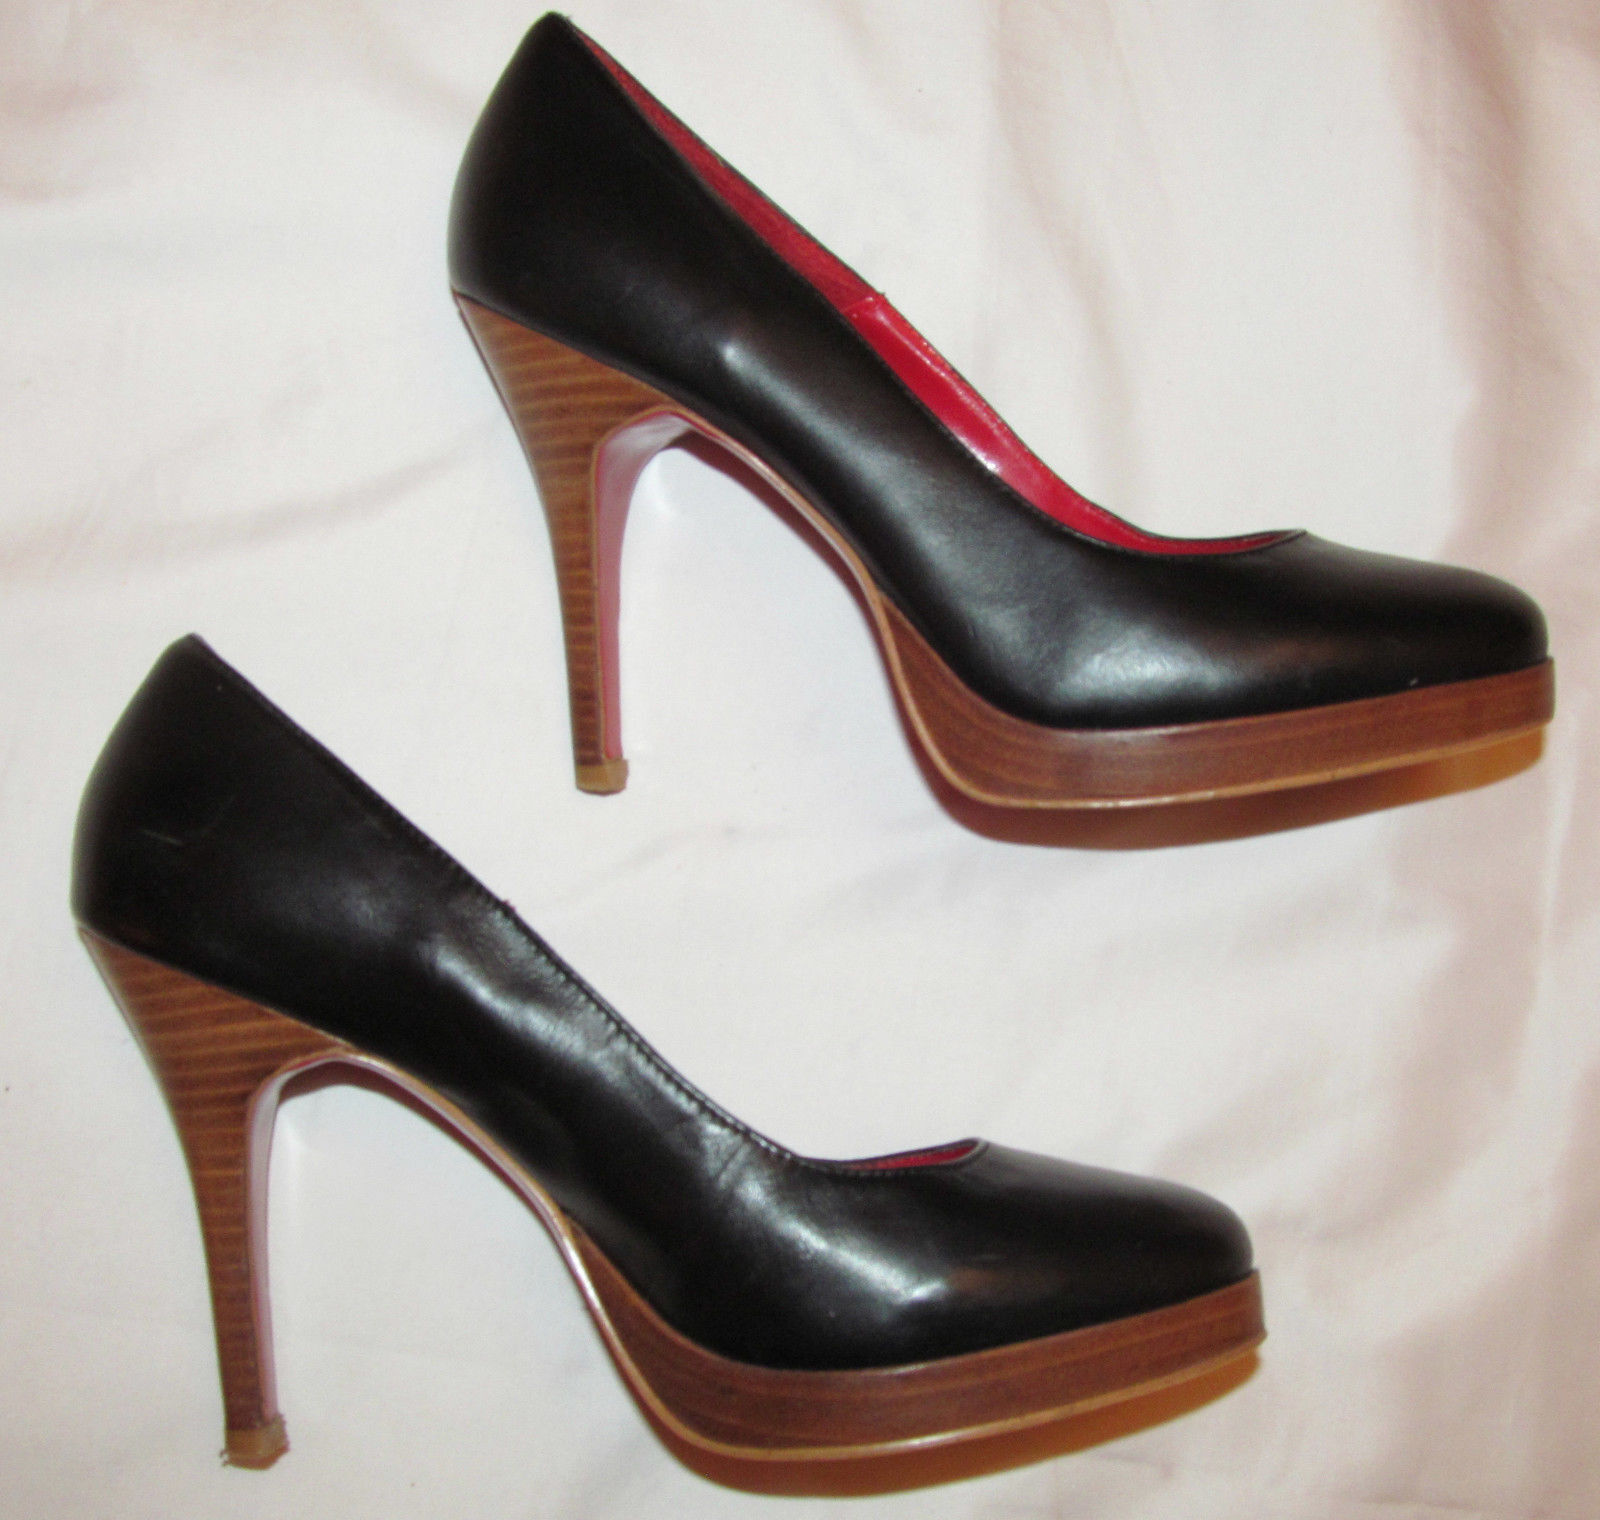 JEFFREY JEFFREY JEFFREY CAMPBELL schwarz leather and wood platform heel pumps schuhe 8 M  a3ecc4